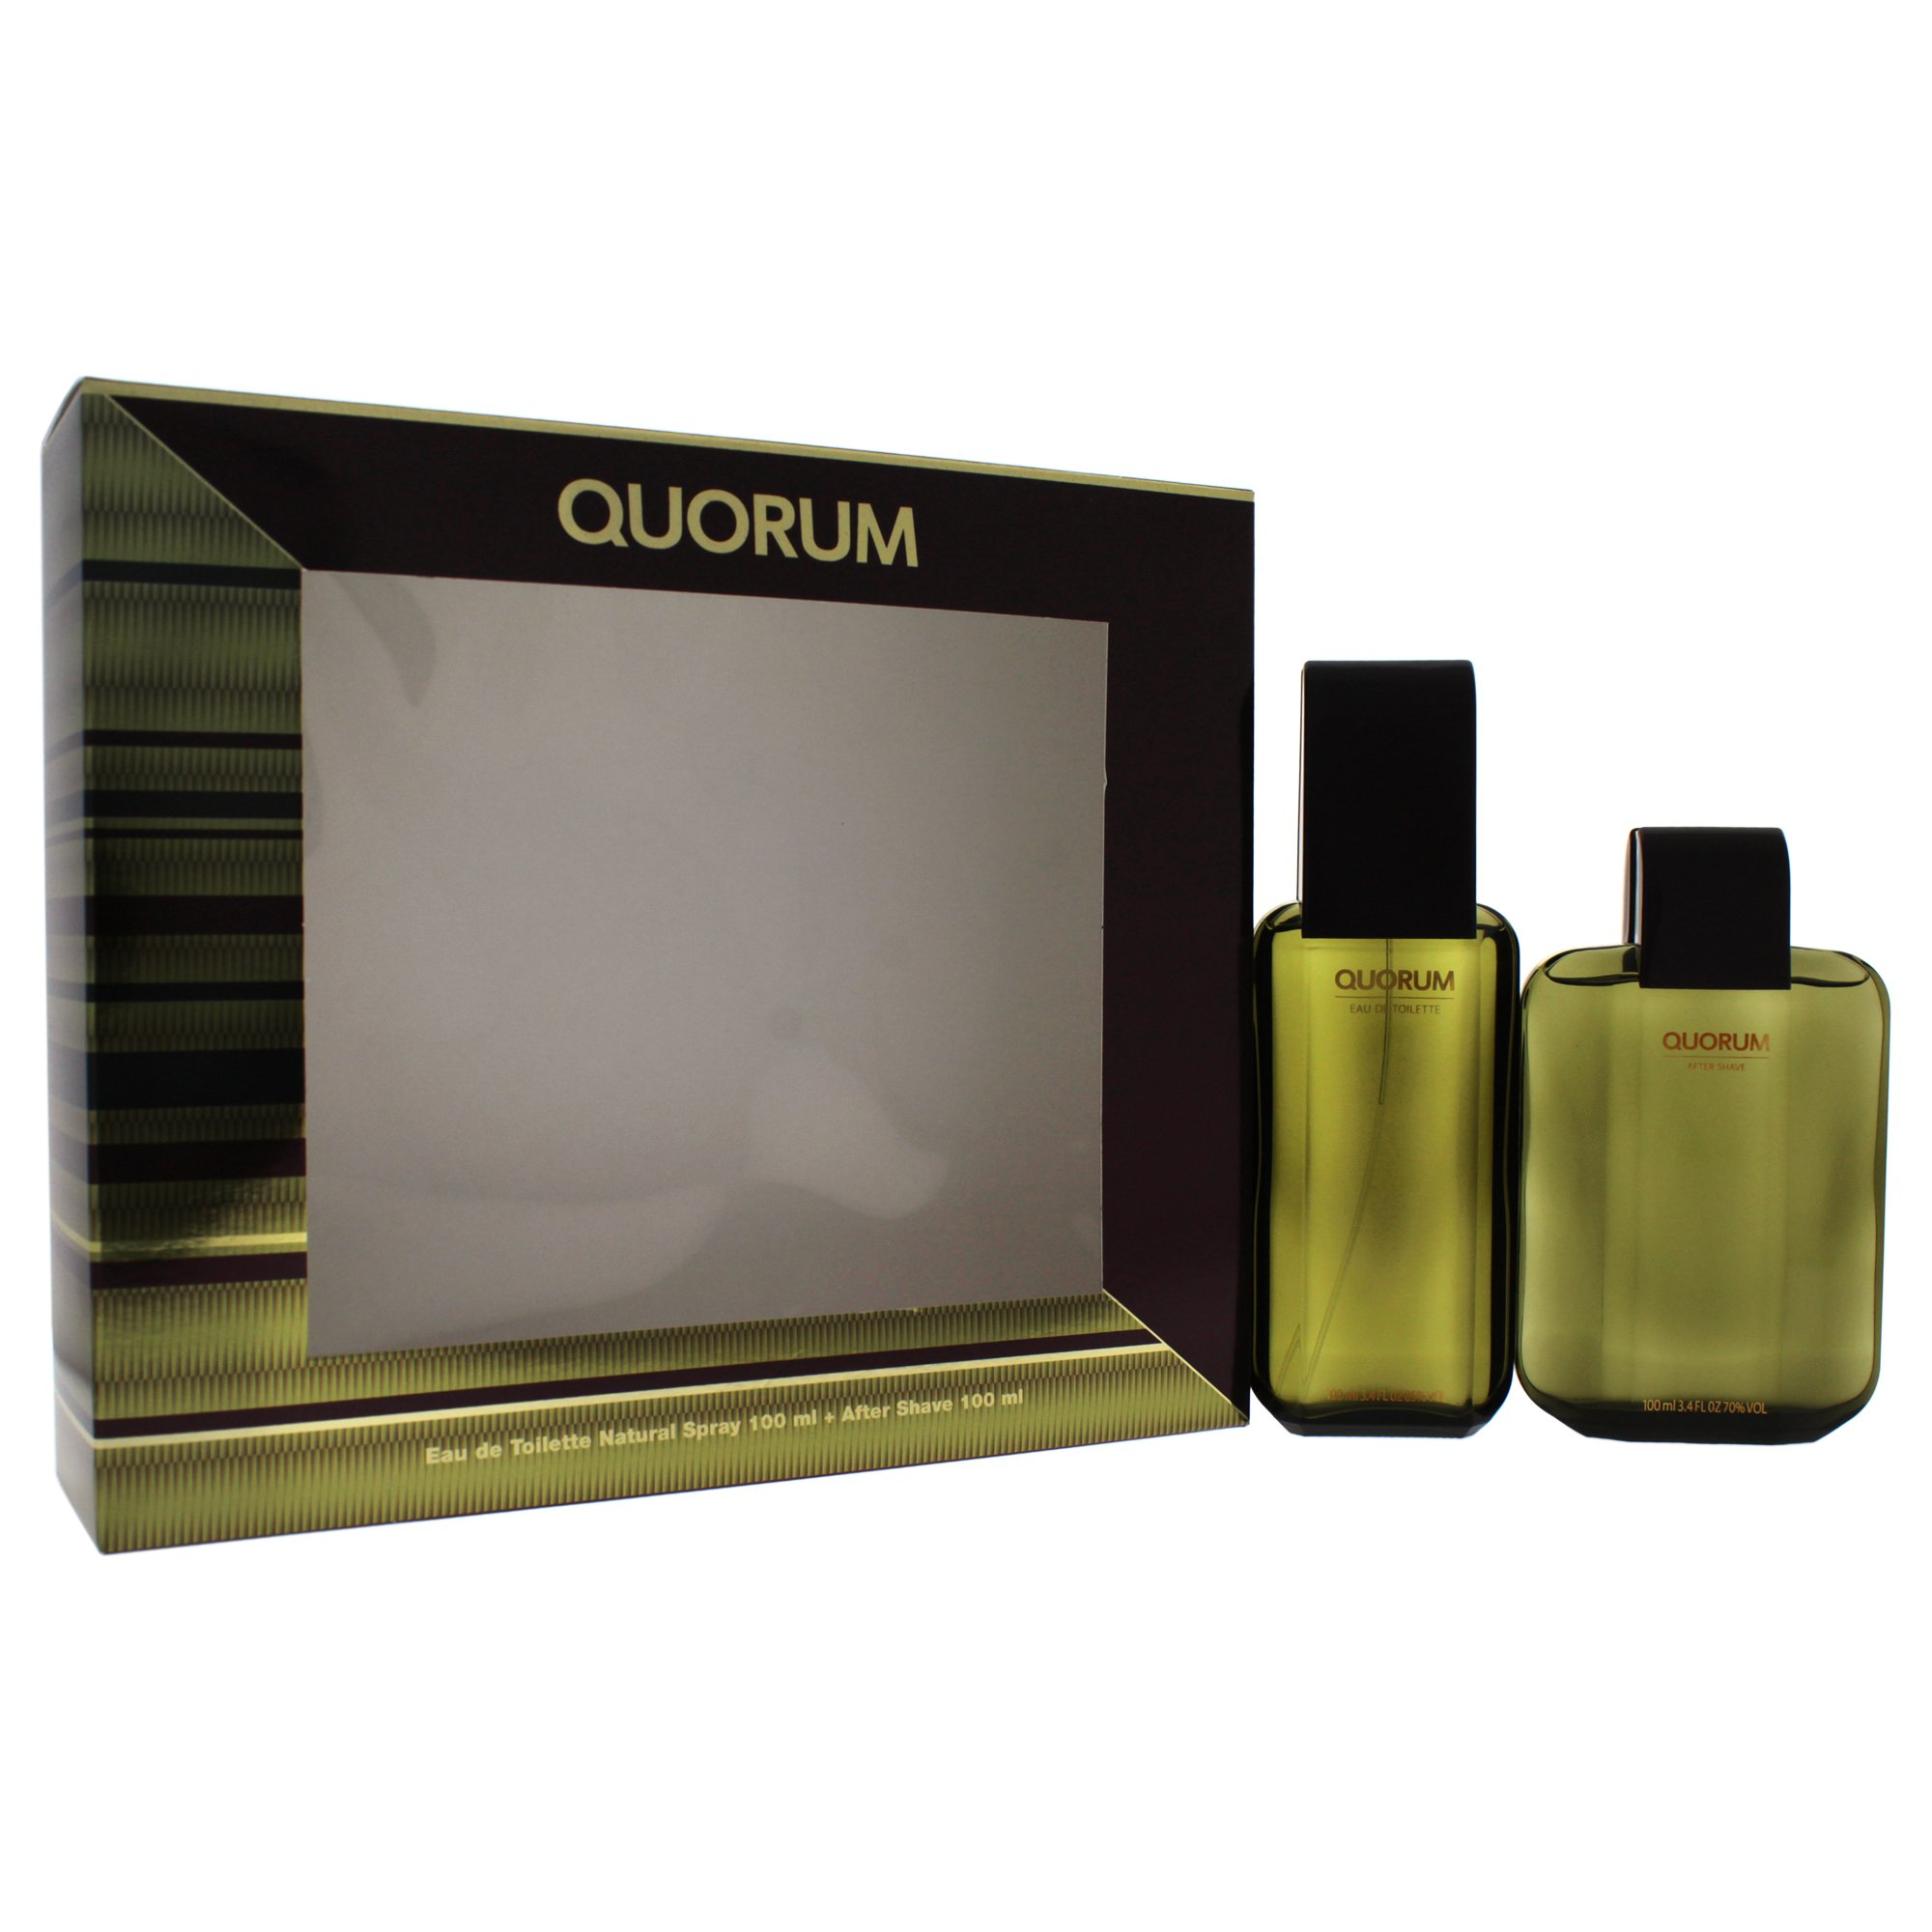 Antonio Puig Quorum Men Giftset (Eau De Toilette Spray, After Shave Lotion)